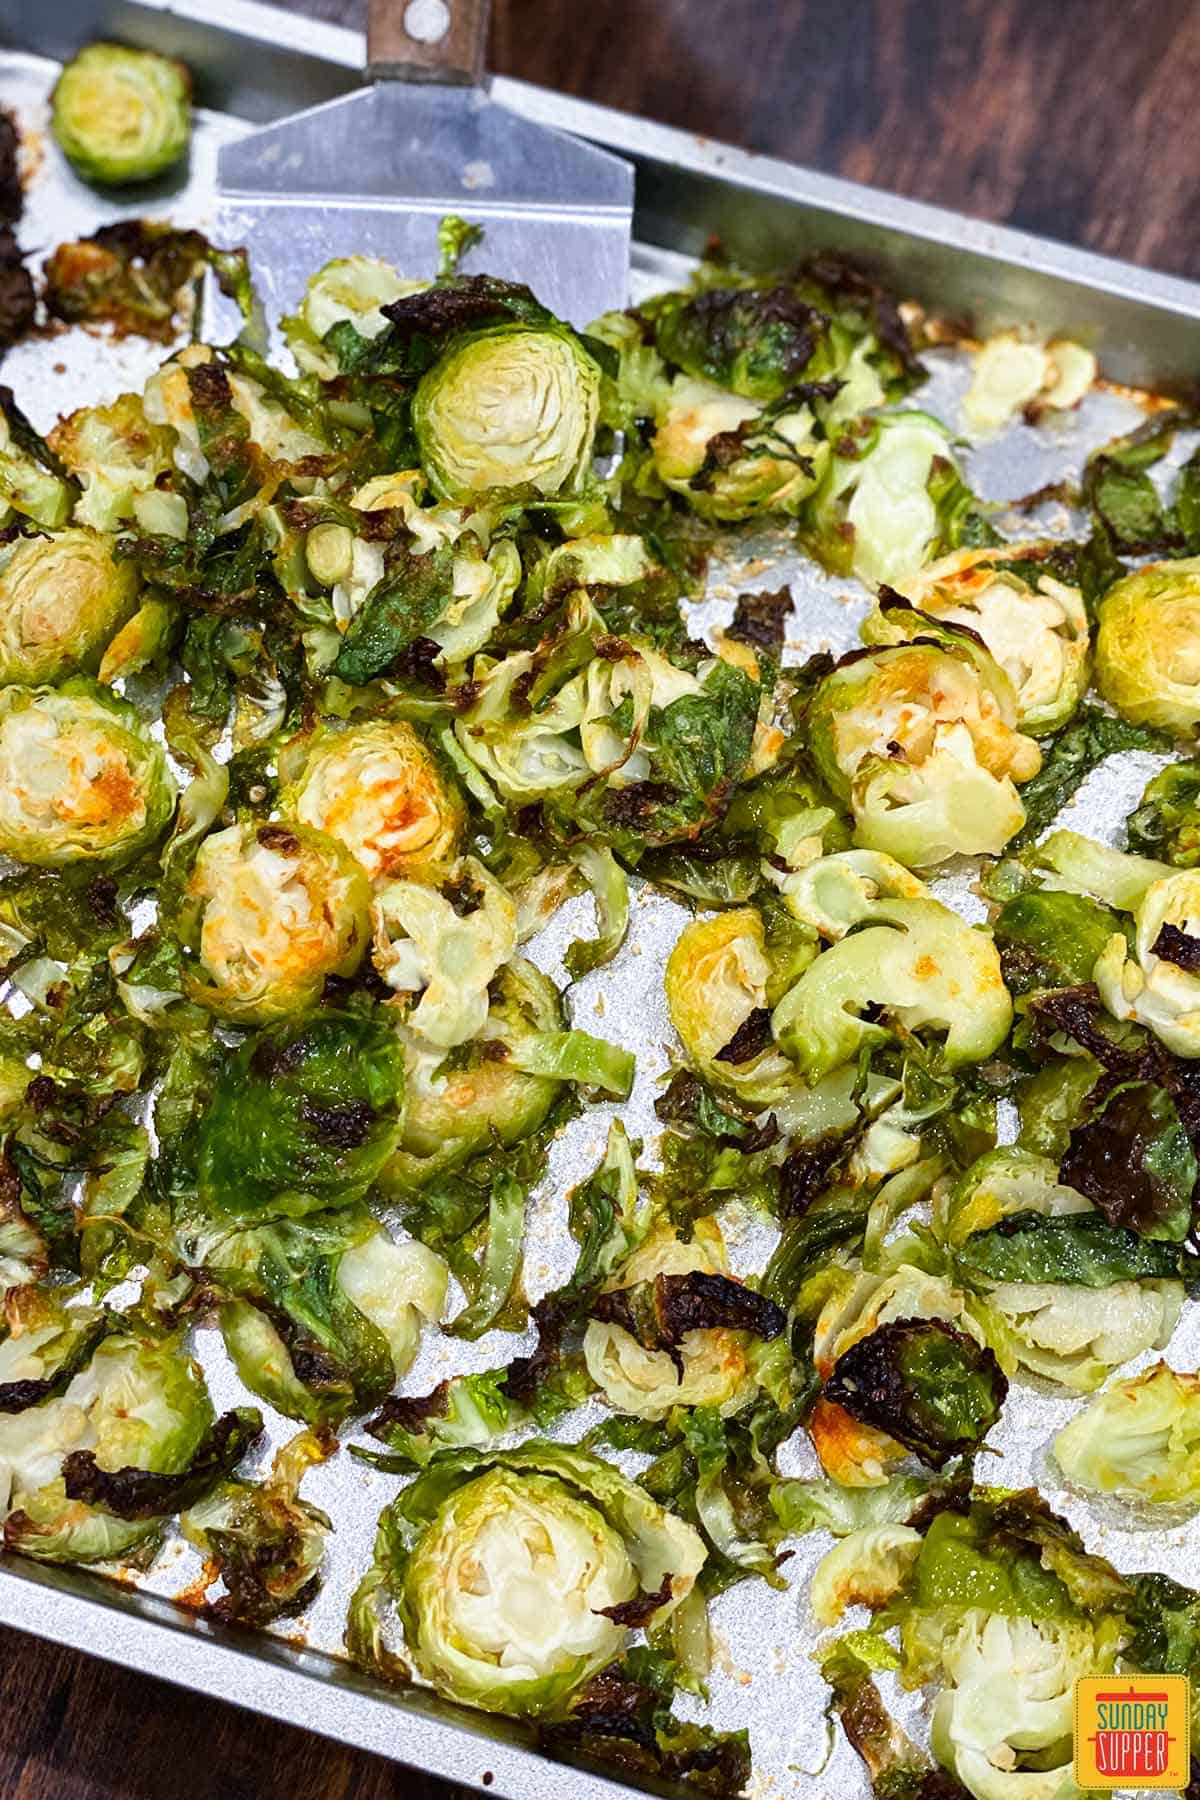 Honey roasted brussels sprouts on a baking sheet with a spatula